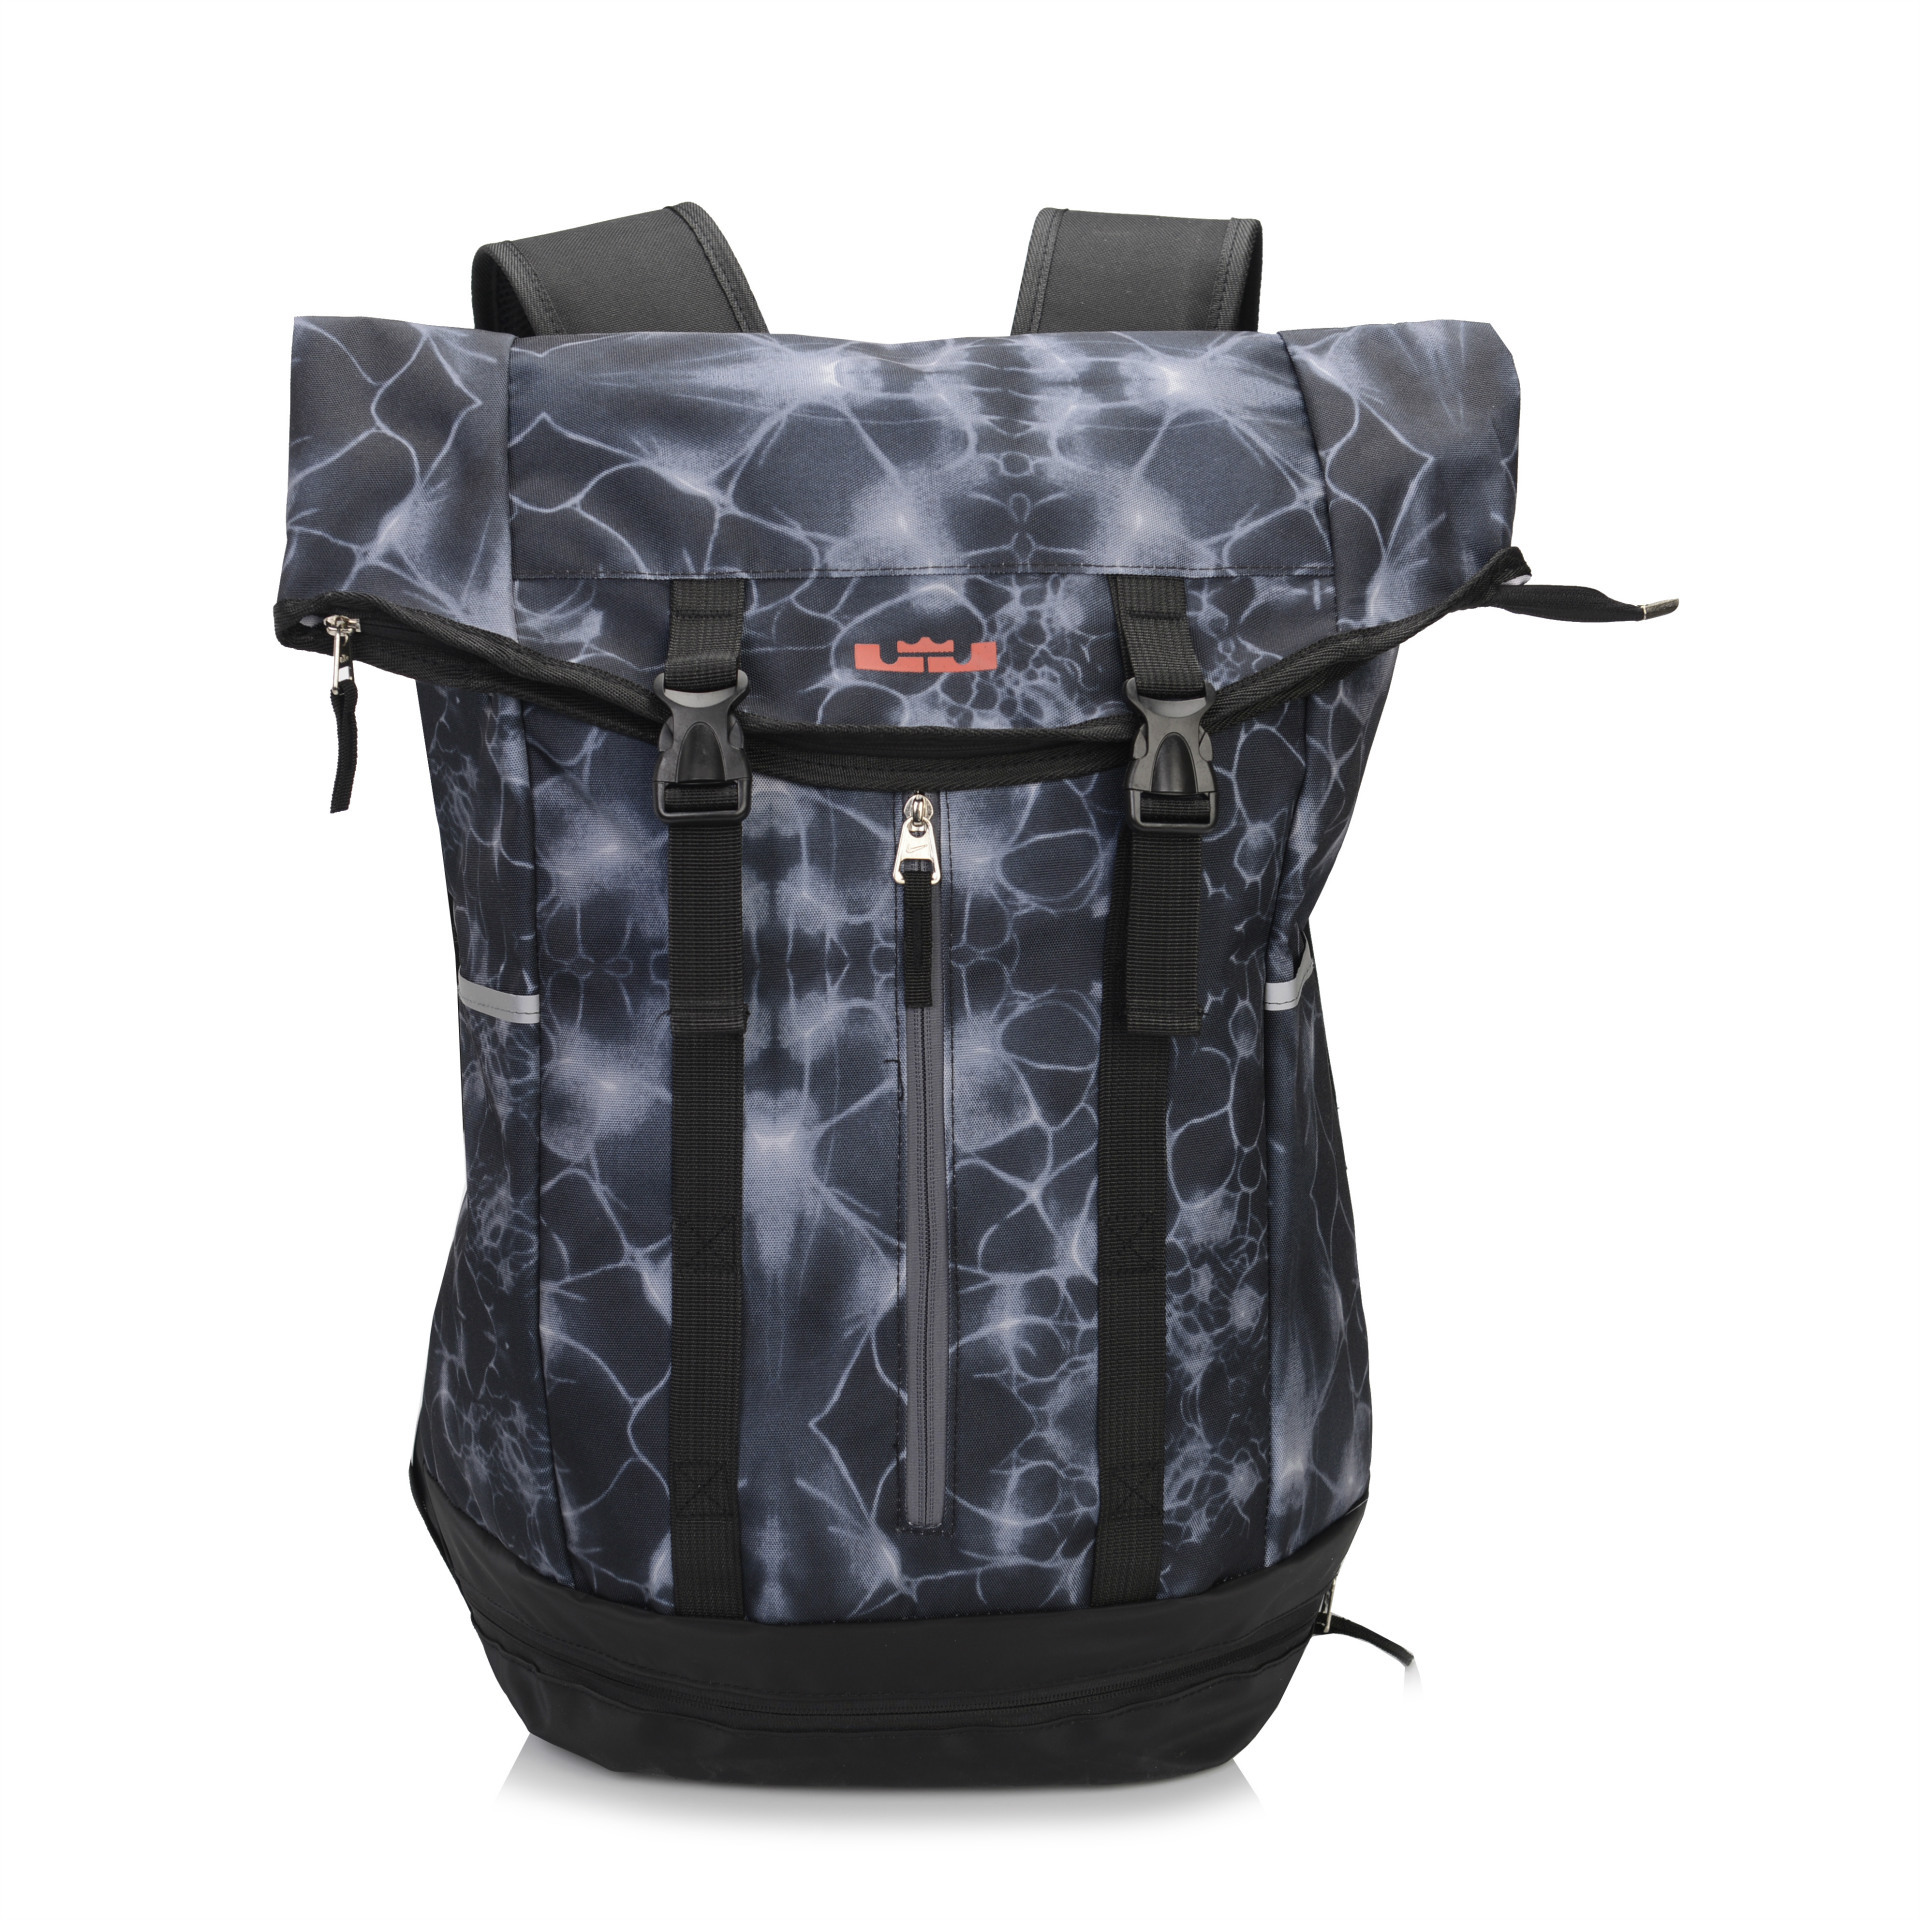 Backpack Backpack Mountaineering Bag Basketball Bag Outdoor Mountaineering Bag Leisure Sports Backpack 5 strong oxygen gazelle 26l backpack outdoor light breathable mountaineering bag double shoulder sport bag